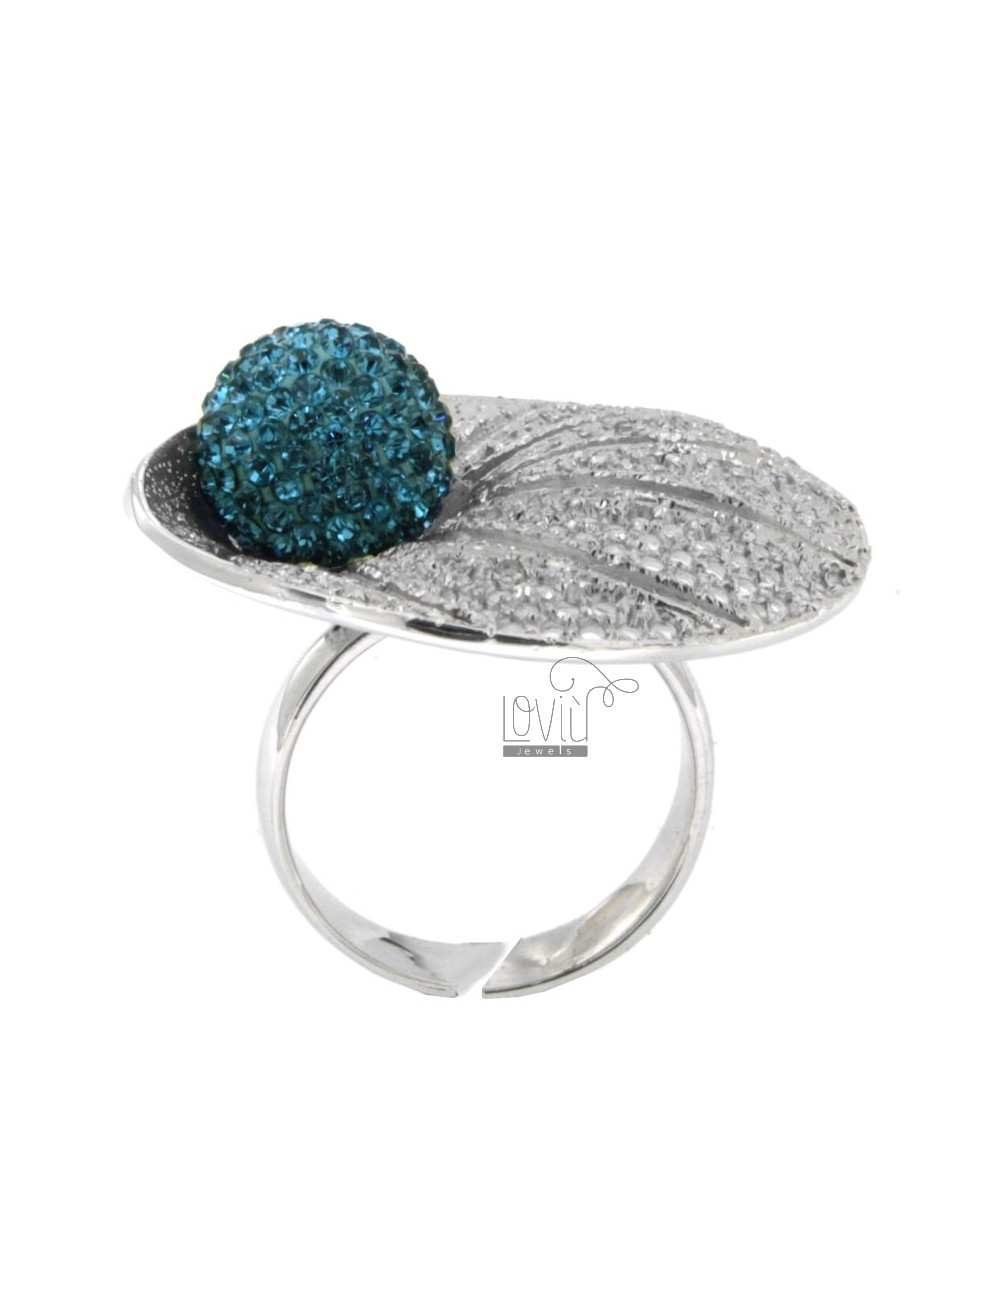 PETAL AND DIAMOND RING PIERCED IN TIT 925 ‰ AG RHODIUM AND BALL CRYSTAL RESIN AND BLUE SIZE ADJUSTABLE